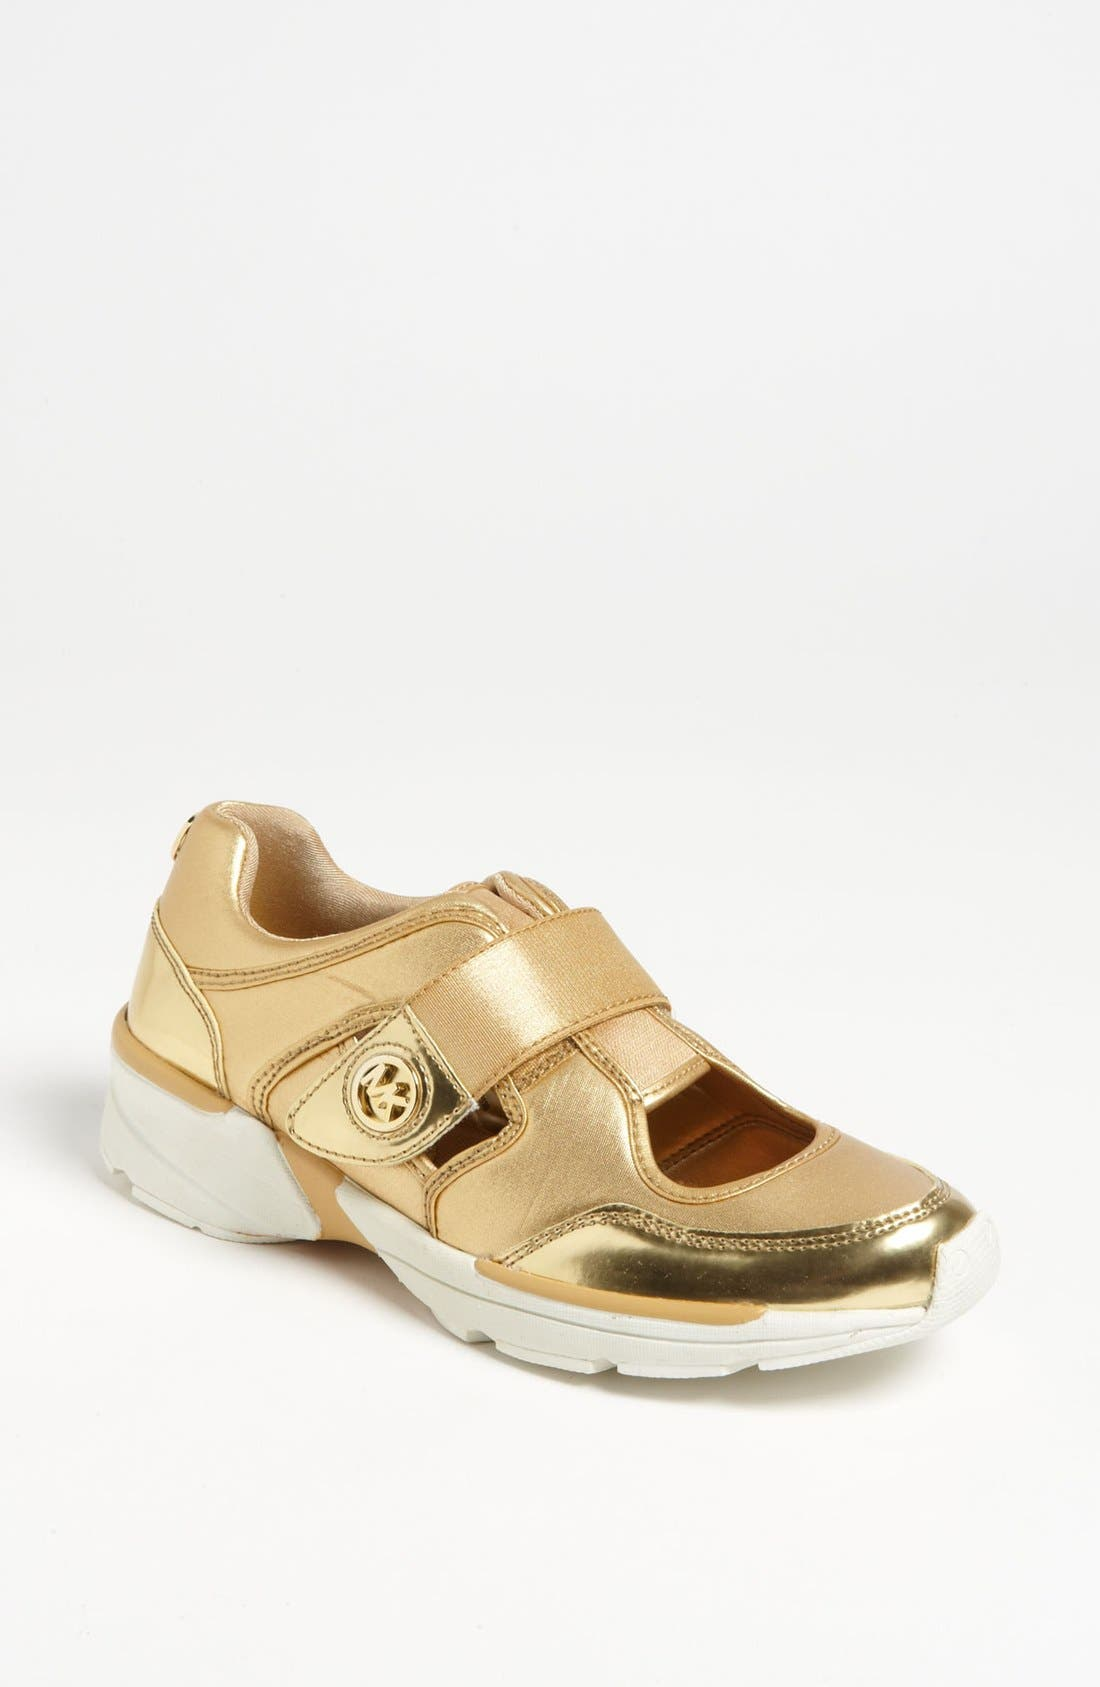 Alternate Image 1 Selected - MICHAEL Michael Kors 'Walker' Cutout Sneaker